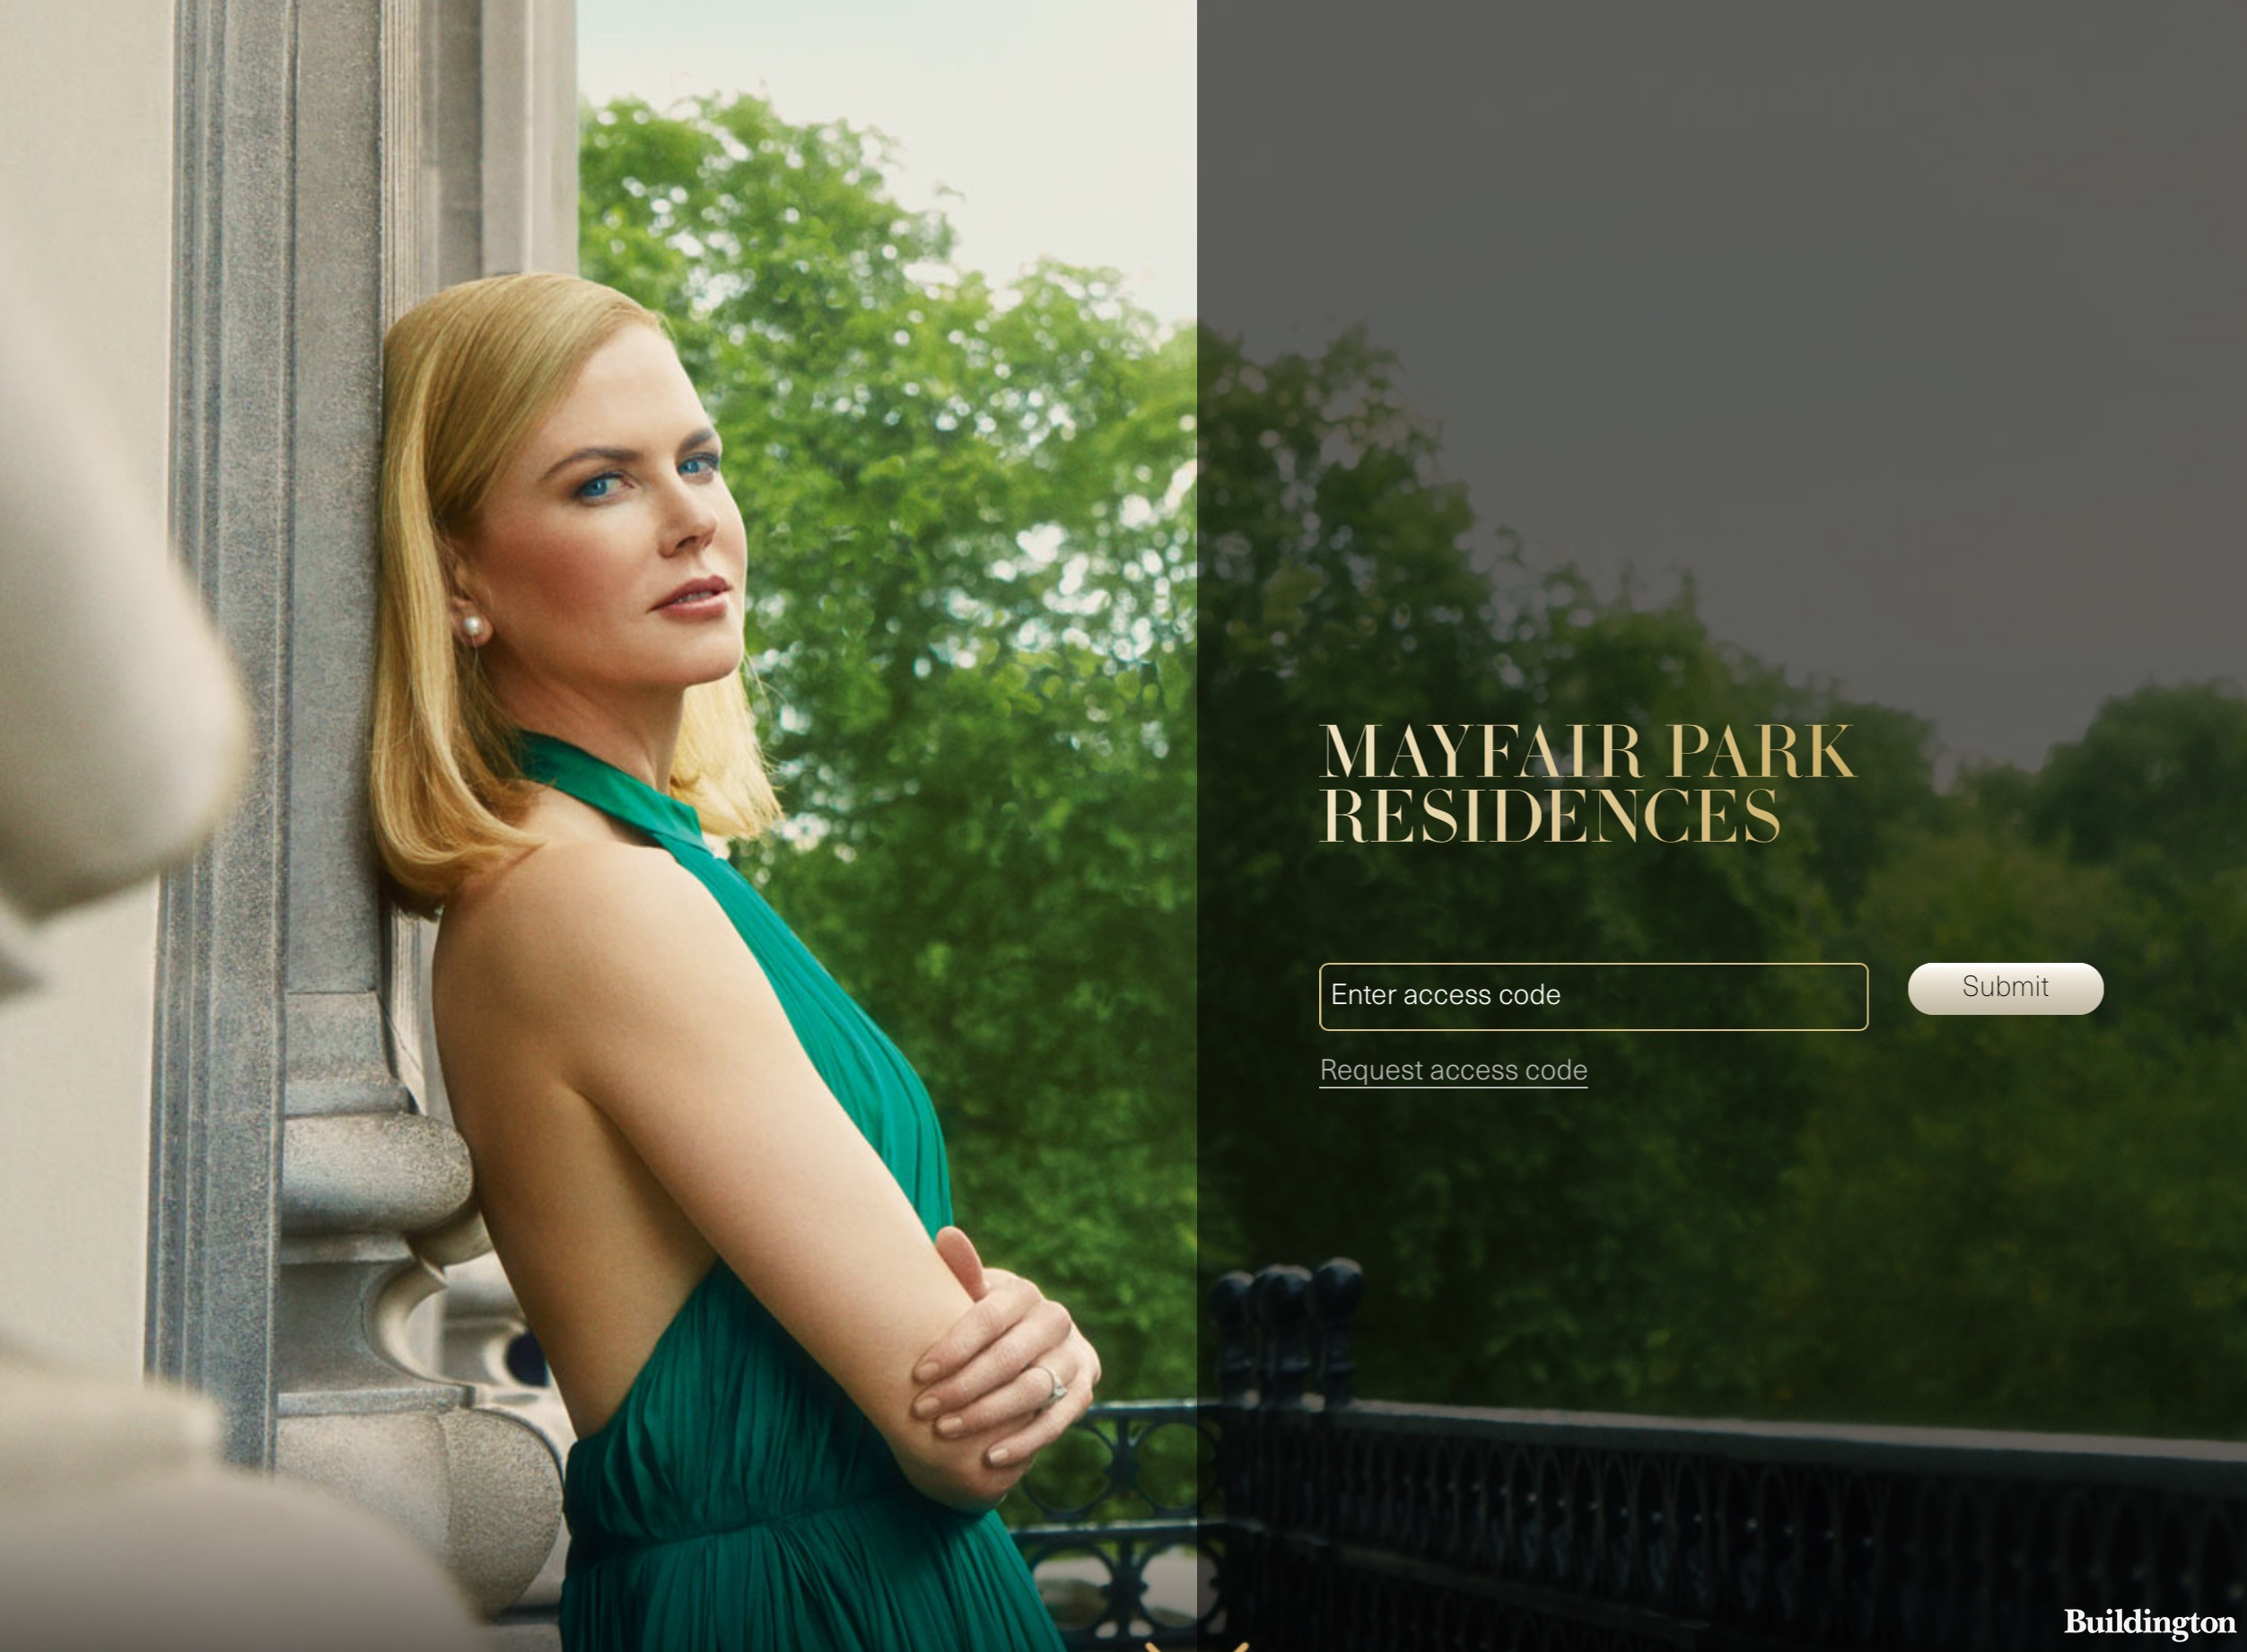 Nicole Kidman on Mayfair Park Residences website at Mayfairparkresidences.com in May 2017; screen capture.